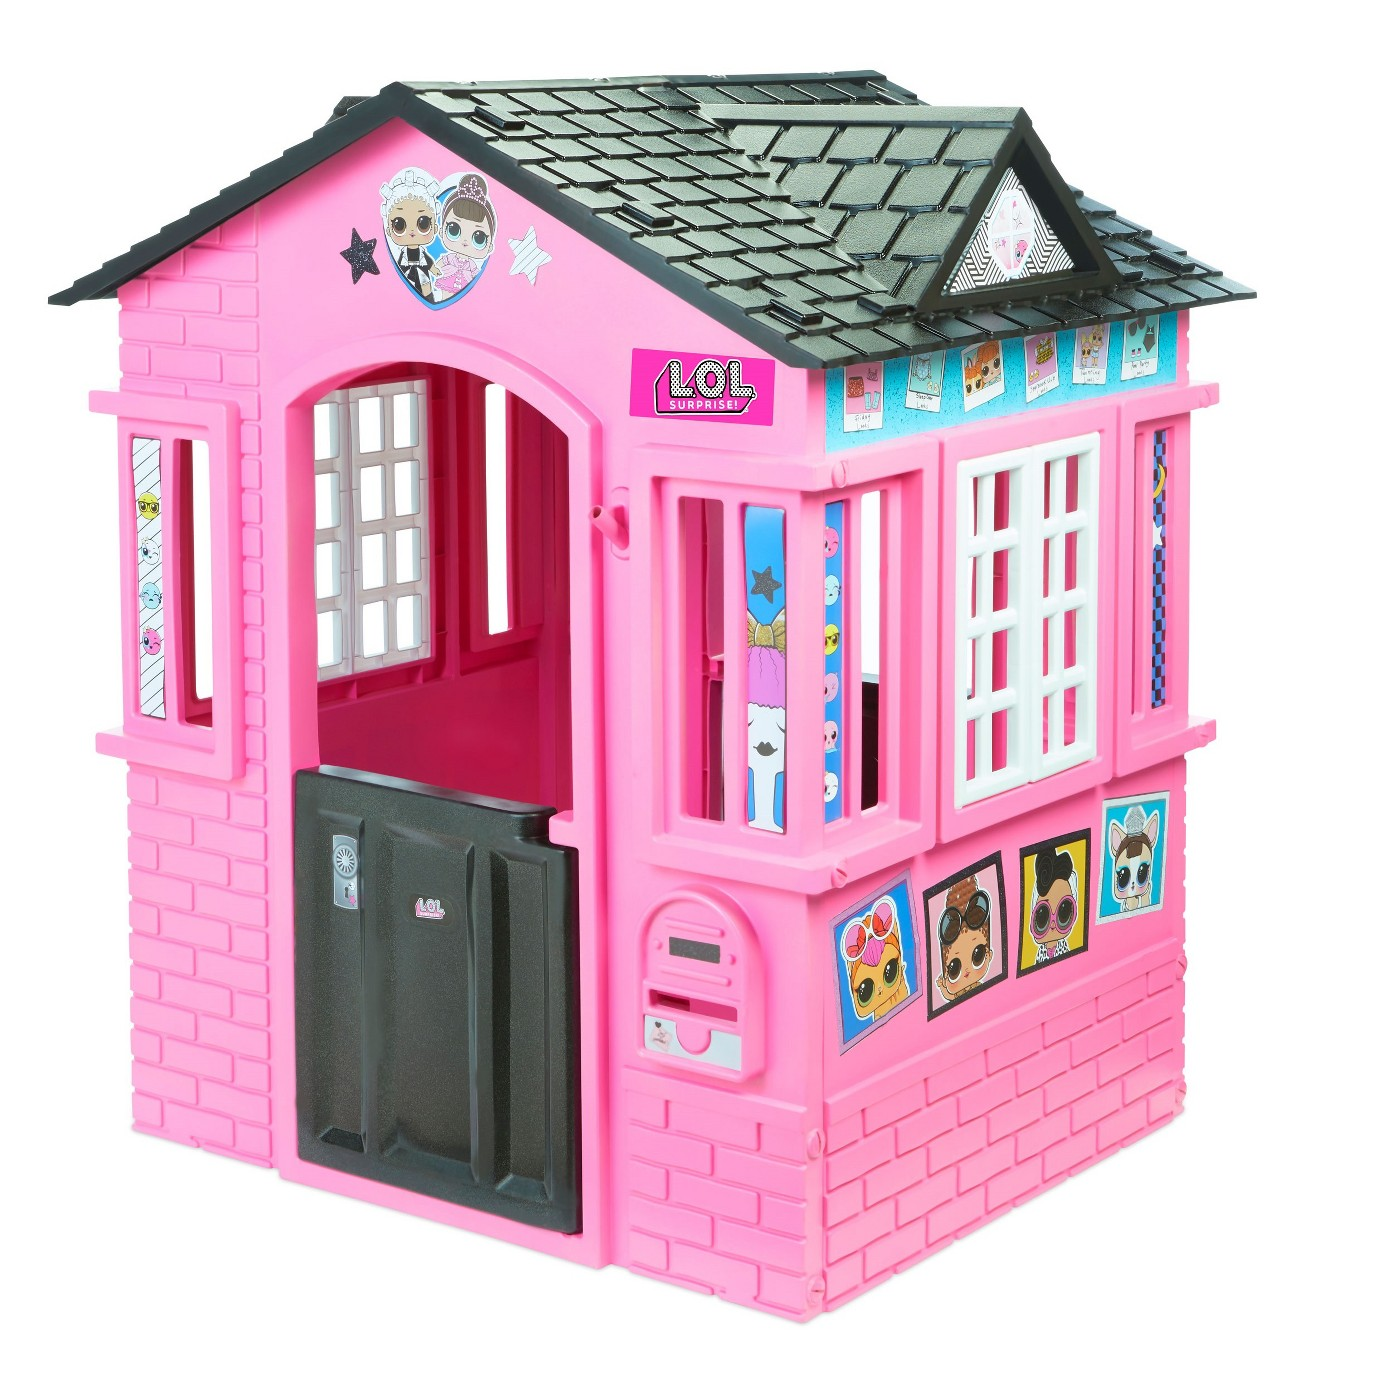 L.O.L Surprise! Indoor and Outdoor Cottage Playhouse with Glitter - image 1 of 6